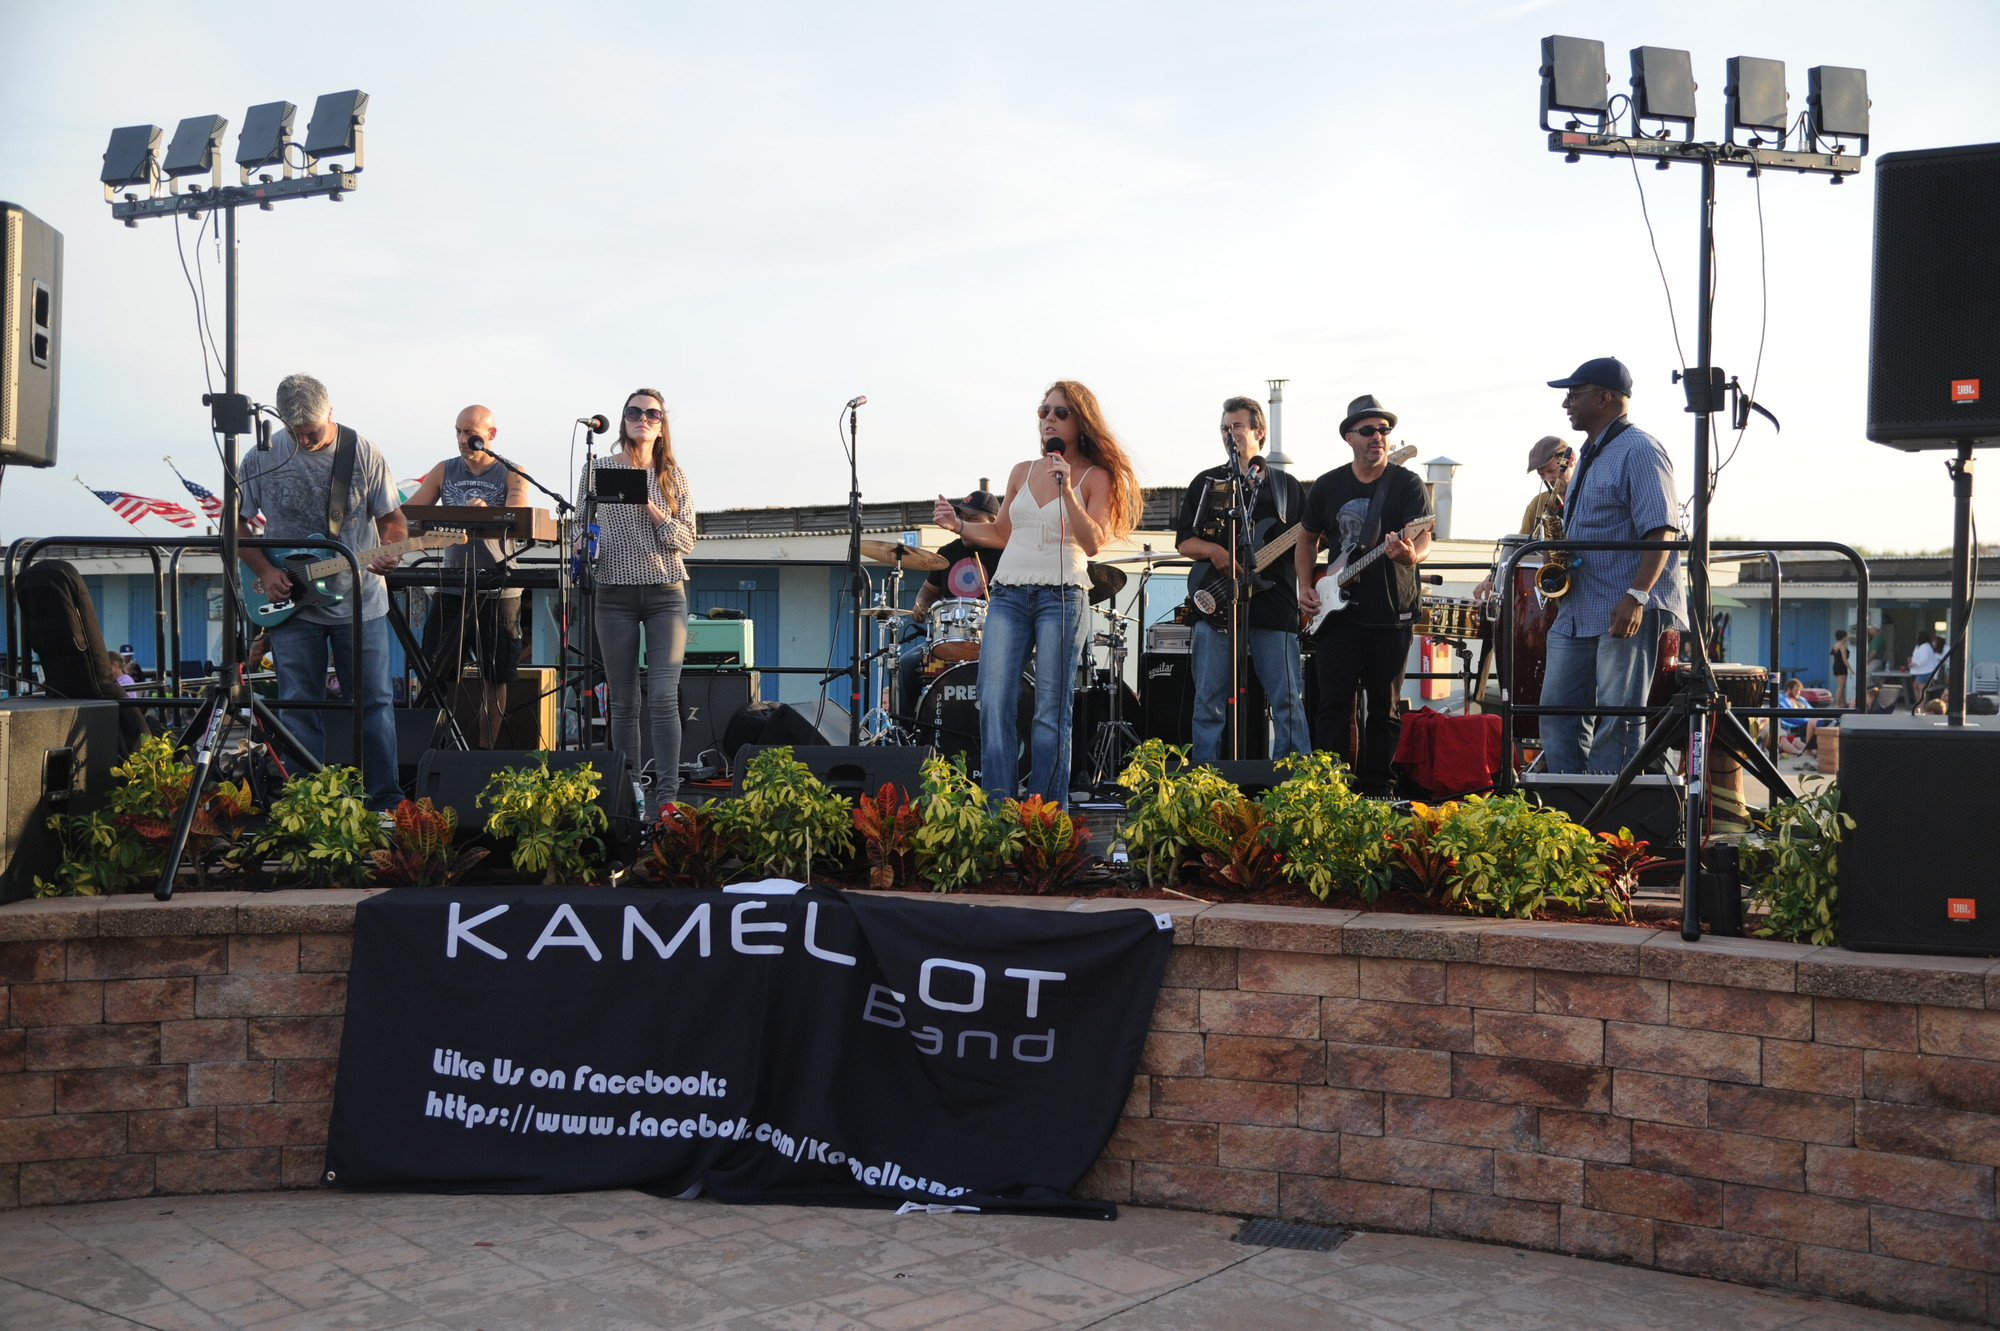 Kamellot, a rock band comprised of graduates of Kennedy High School, played an outdoor concert at MaliBlue for the reunion.